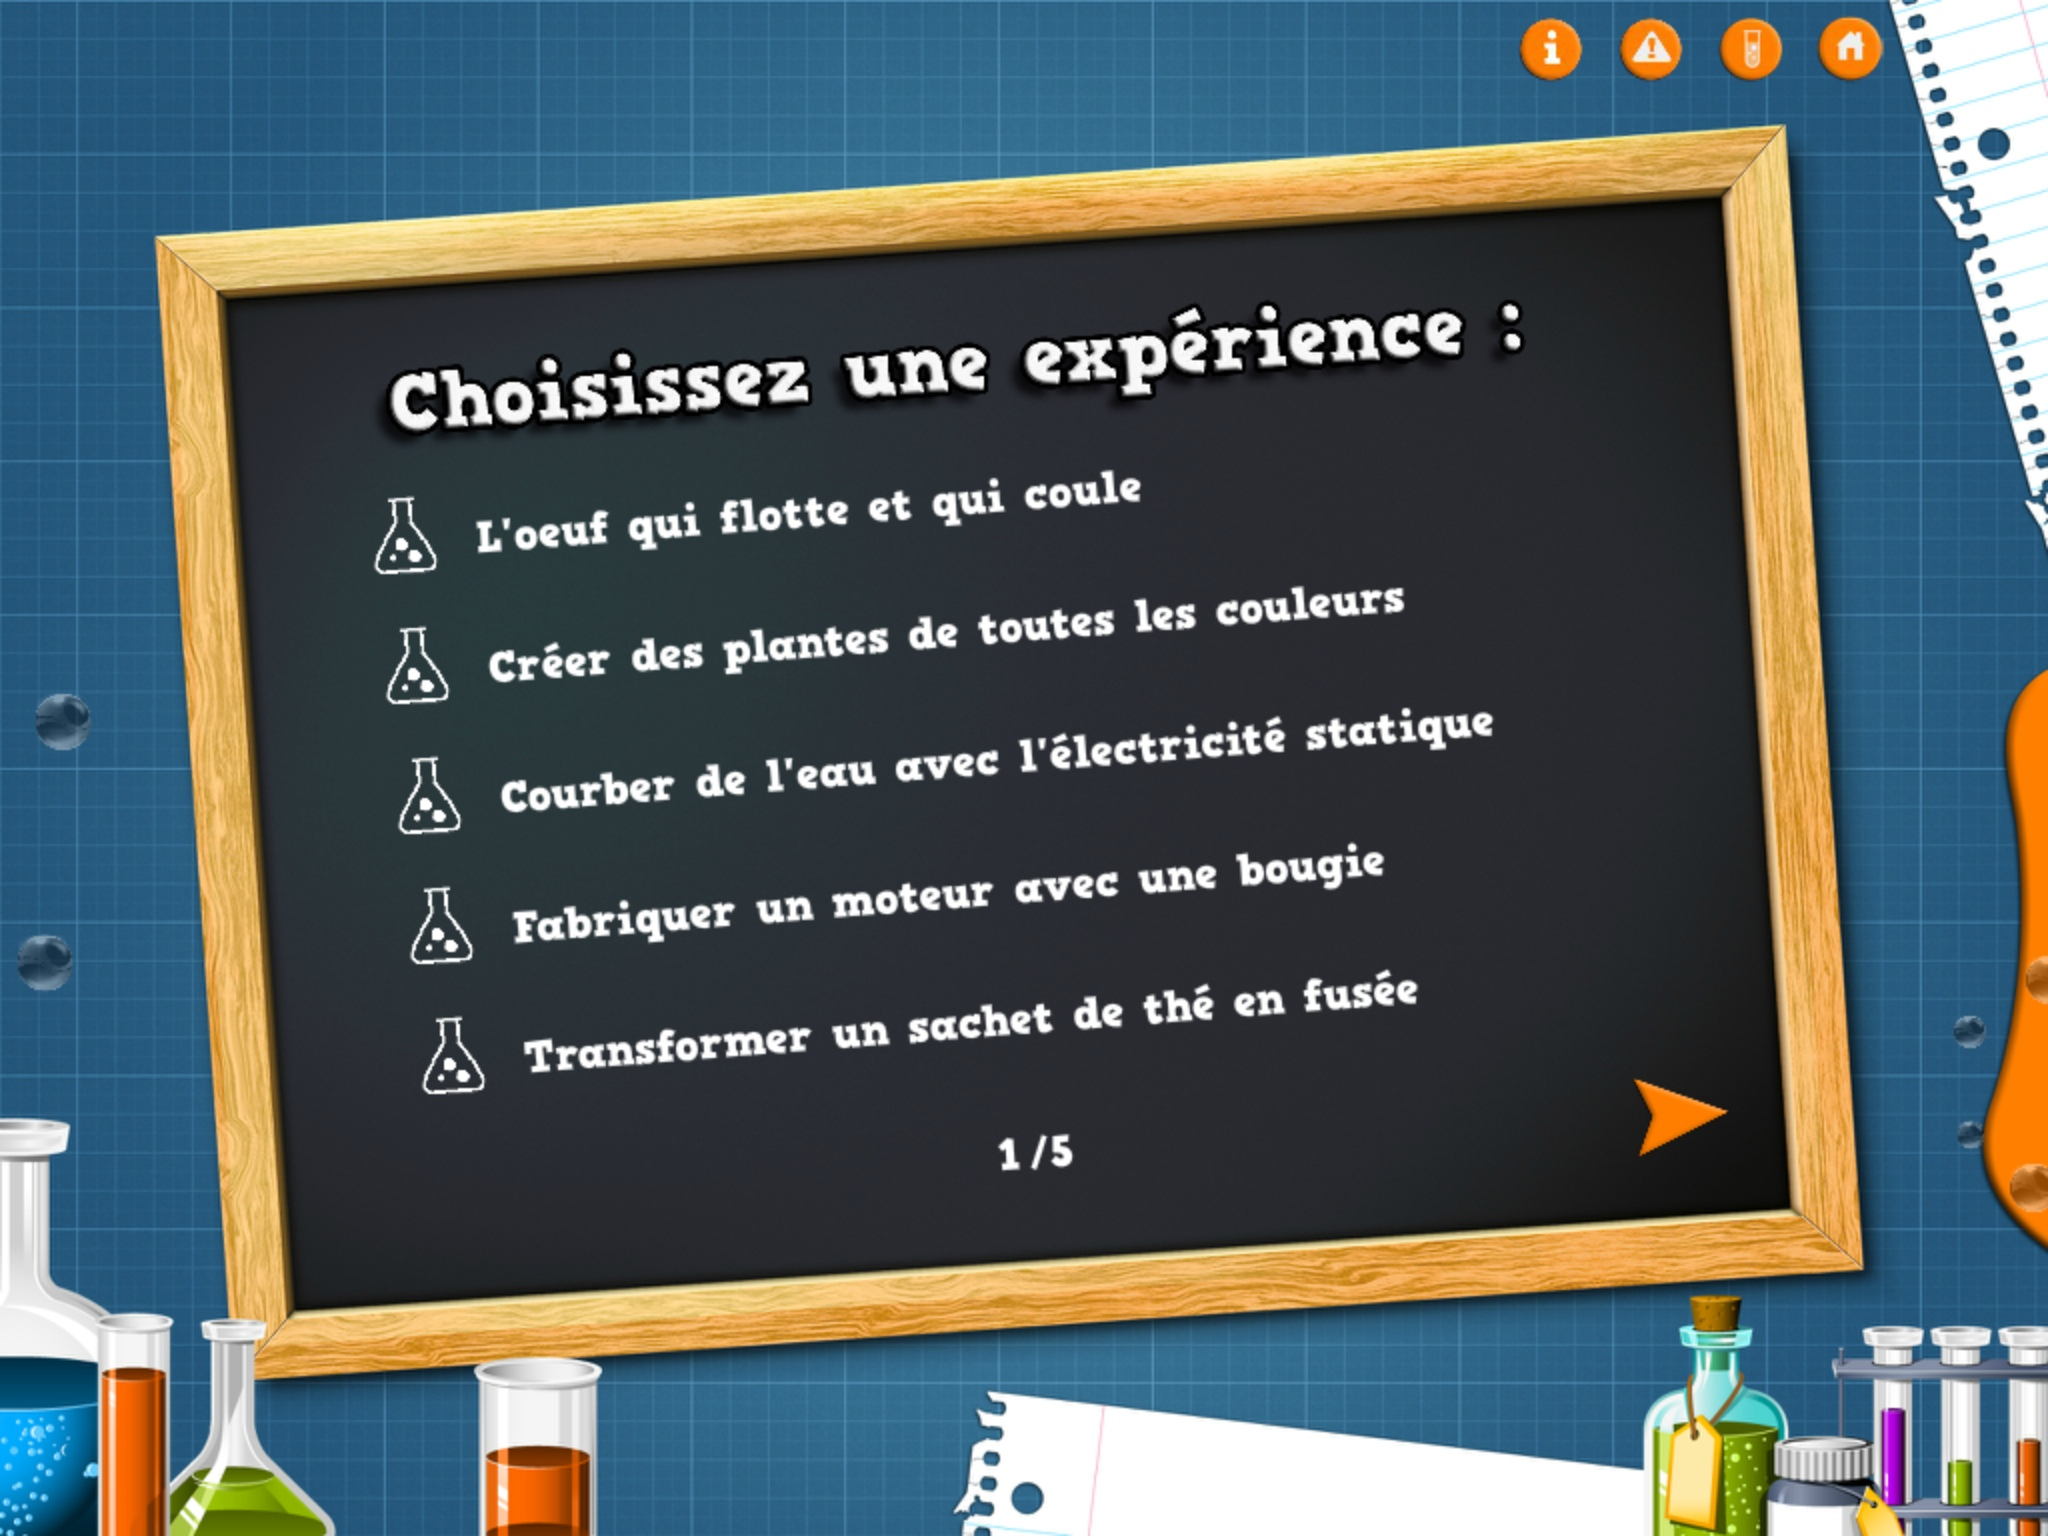 Petites exp riences scientifiques - Creation a faire a la maison ...